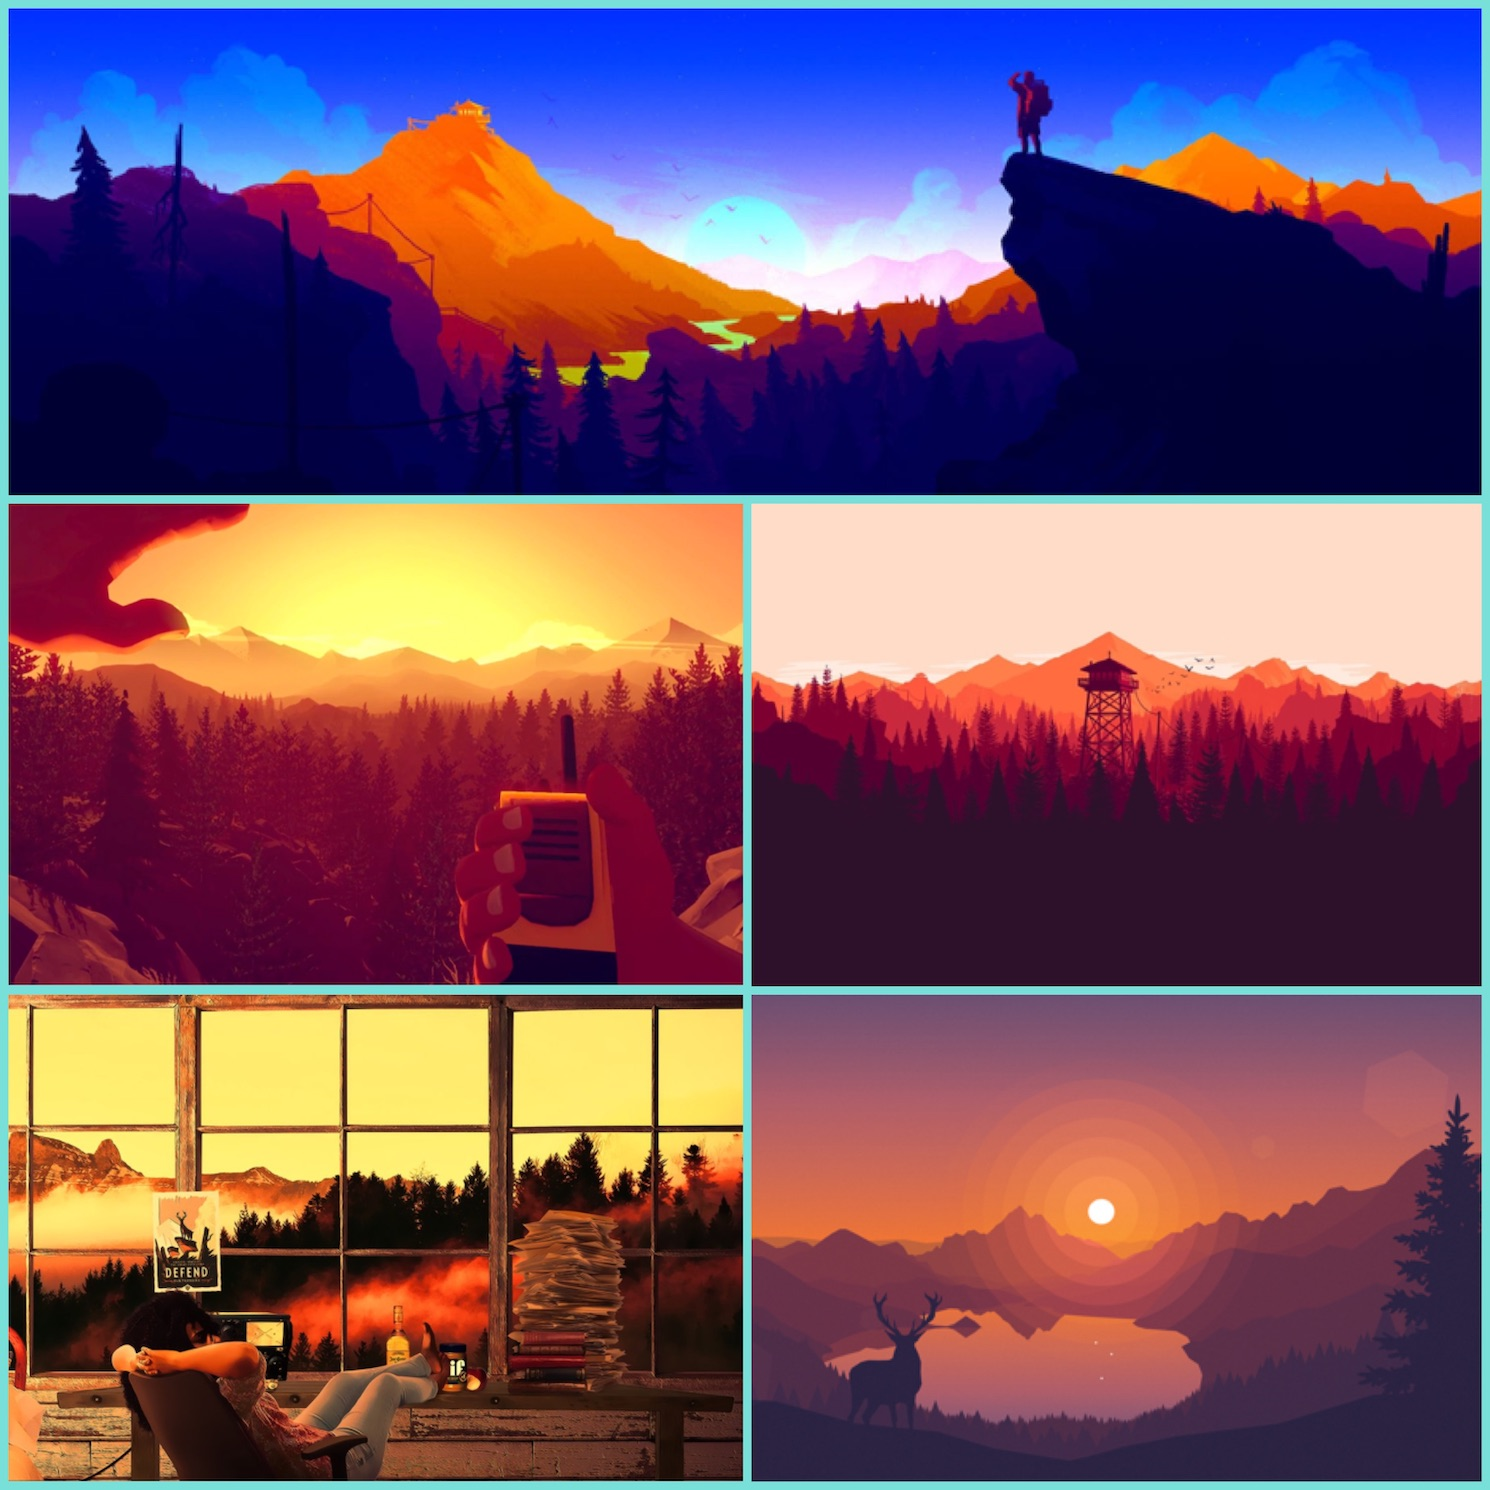 firewatch-campo-santp-valve-considerazioni-riflessioni-insta-thoughts-gaming